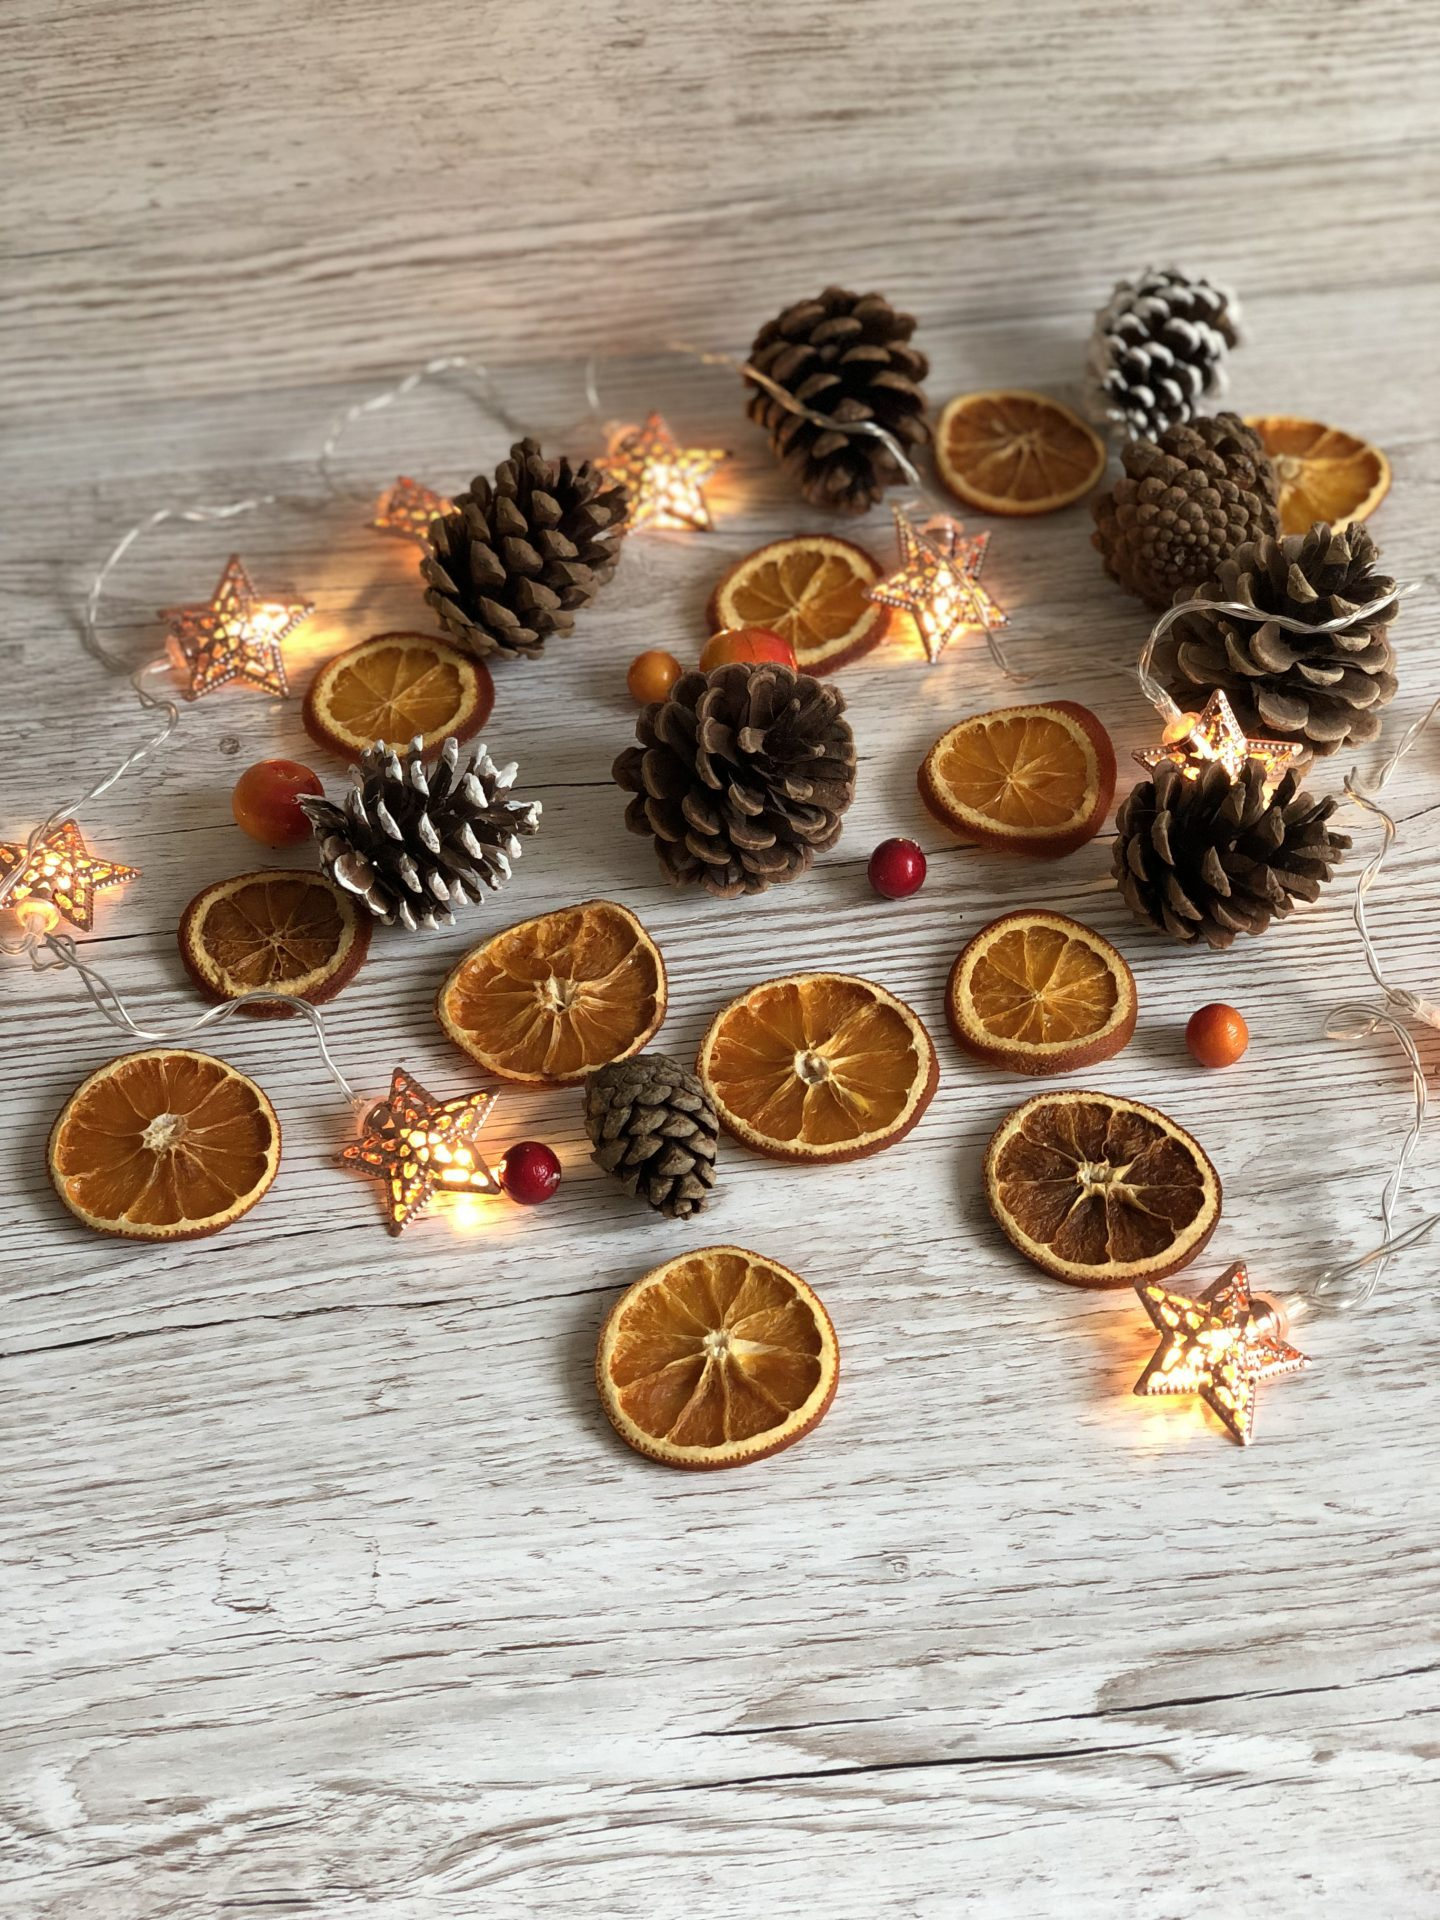 Dried orange slices, pine cones and fairy lights on a wooden background.